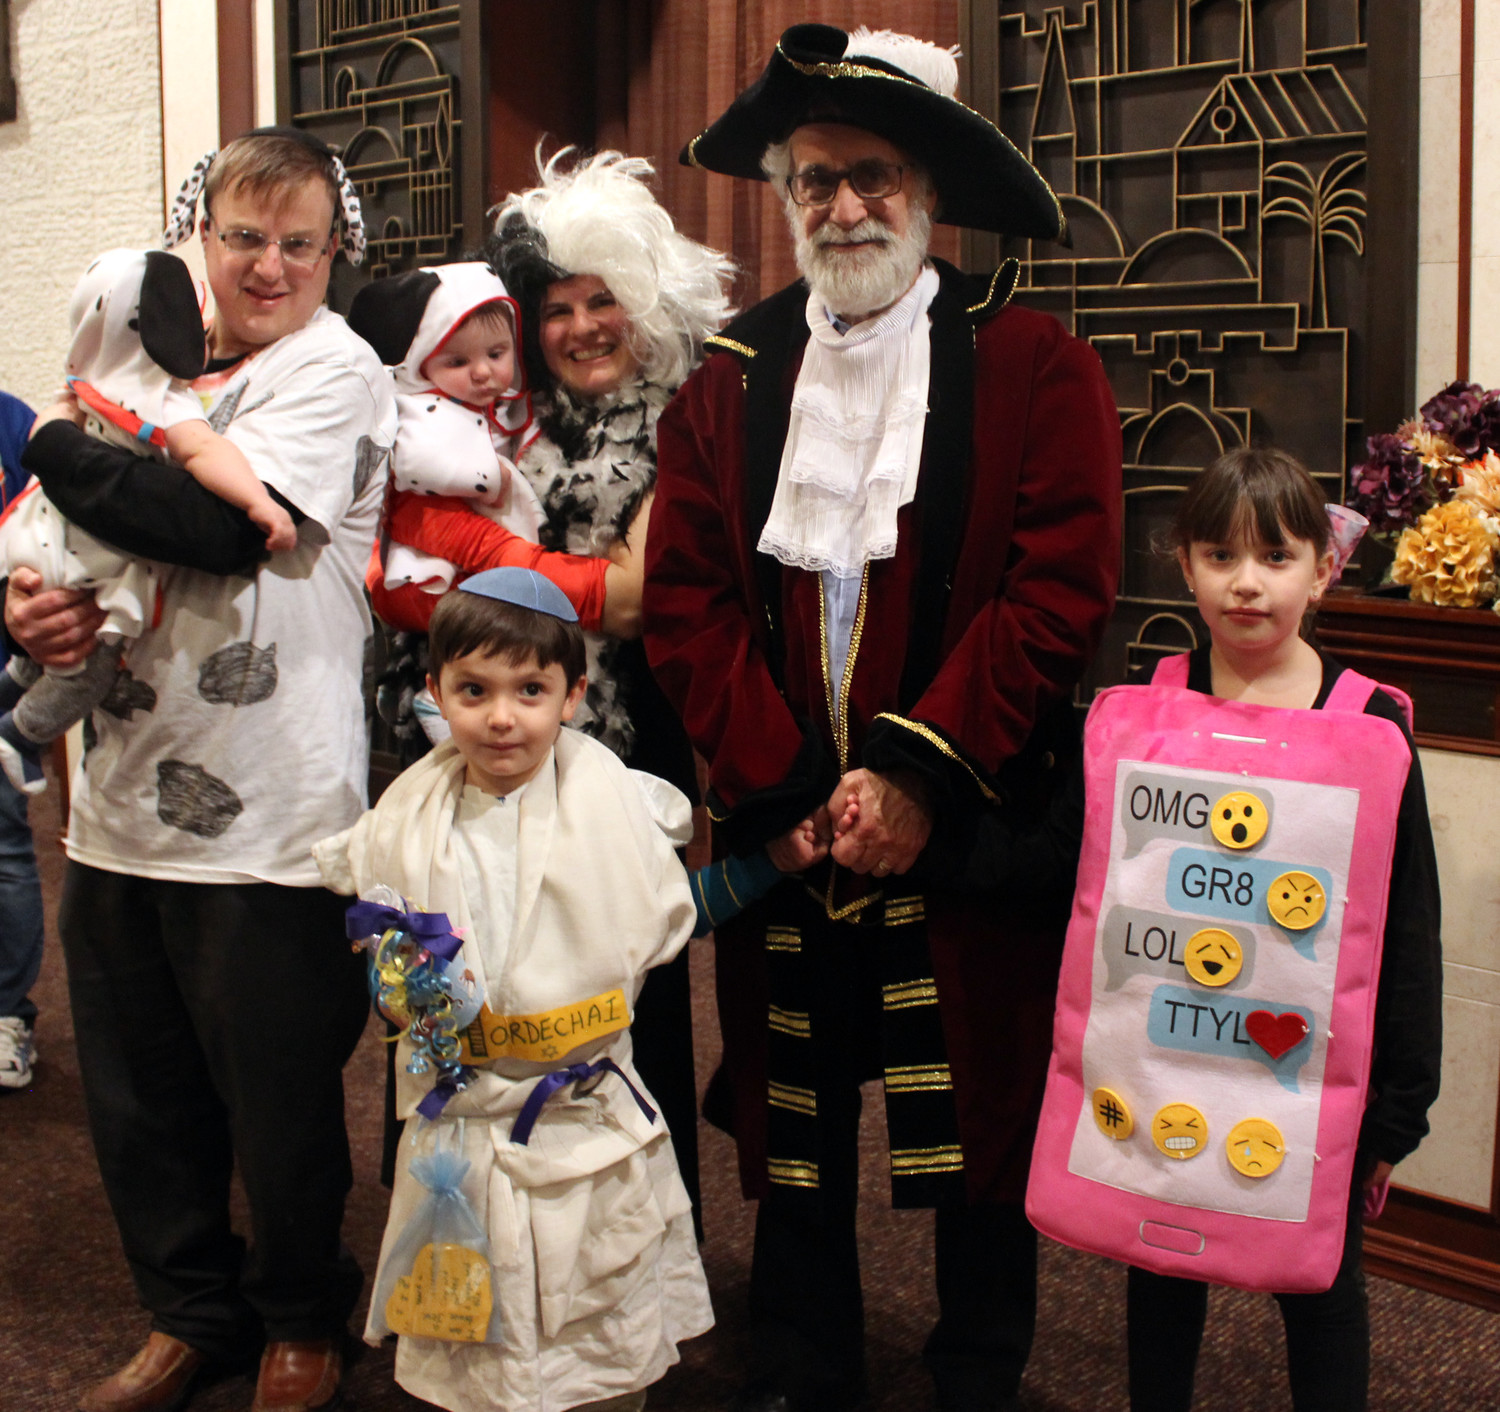 Rabbi Ronald Androphy awarded prizes to Howie Bank, center-left, his wife Stacy, and their nine-month old twin sons Samuel and Jack, all of whom dressed as Dalmatians, as well as Sky Schoenbereger, 4, who dressed as Mordechai and Adison Hurwitz, 7, who dressed as an I-Phone.